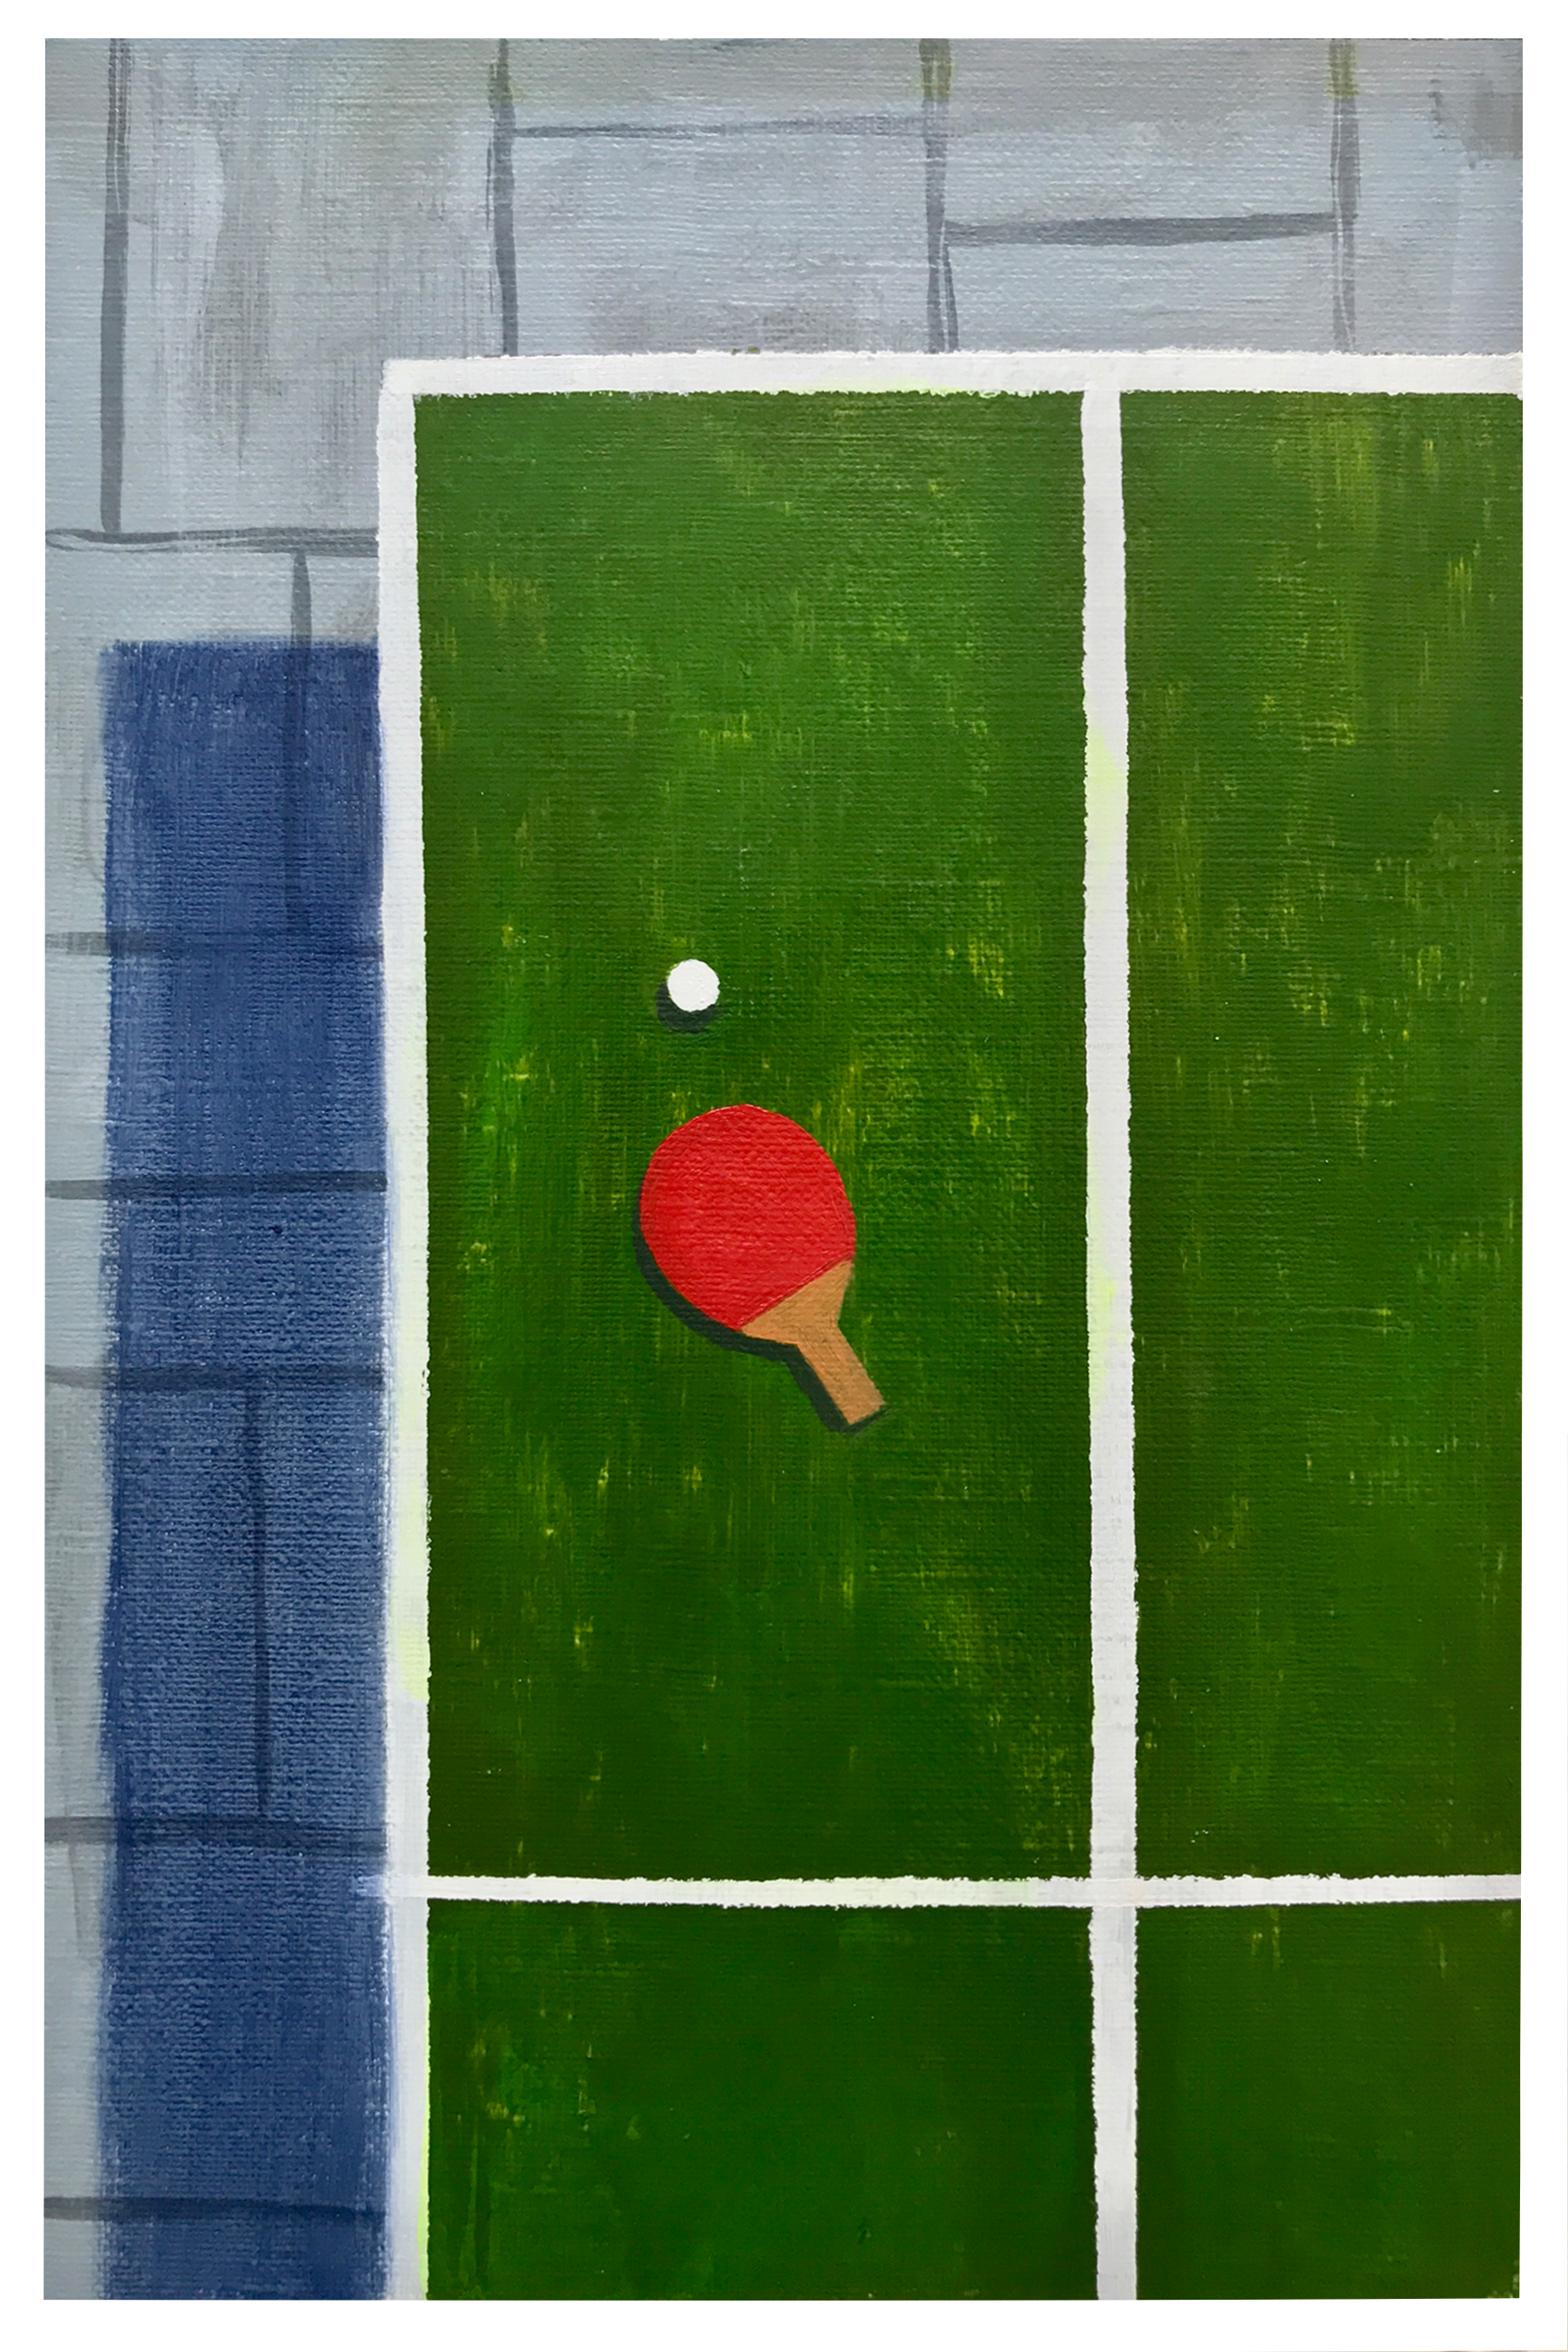 Ping Pong, 9 x 6 in.